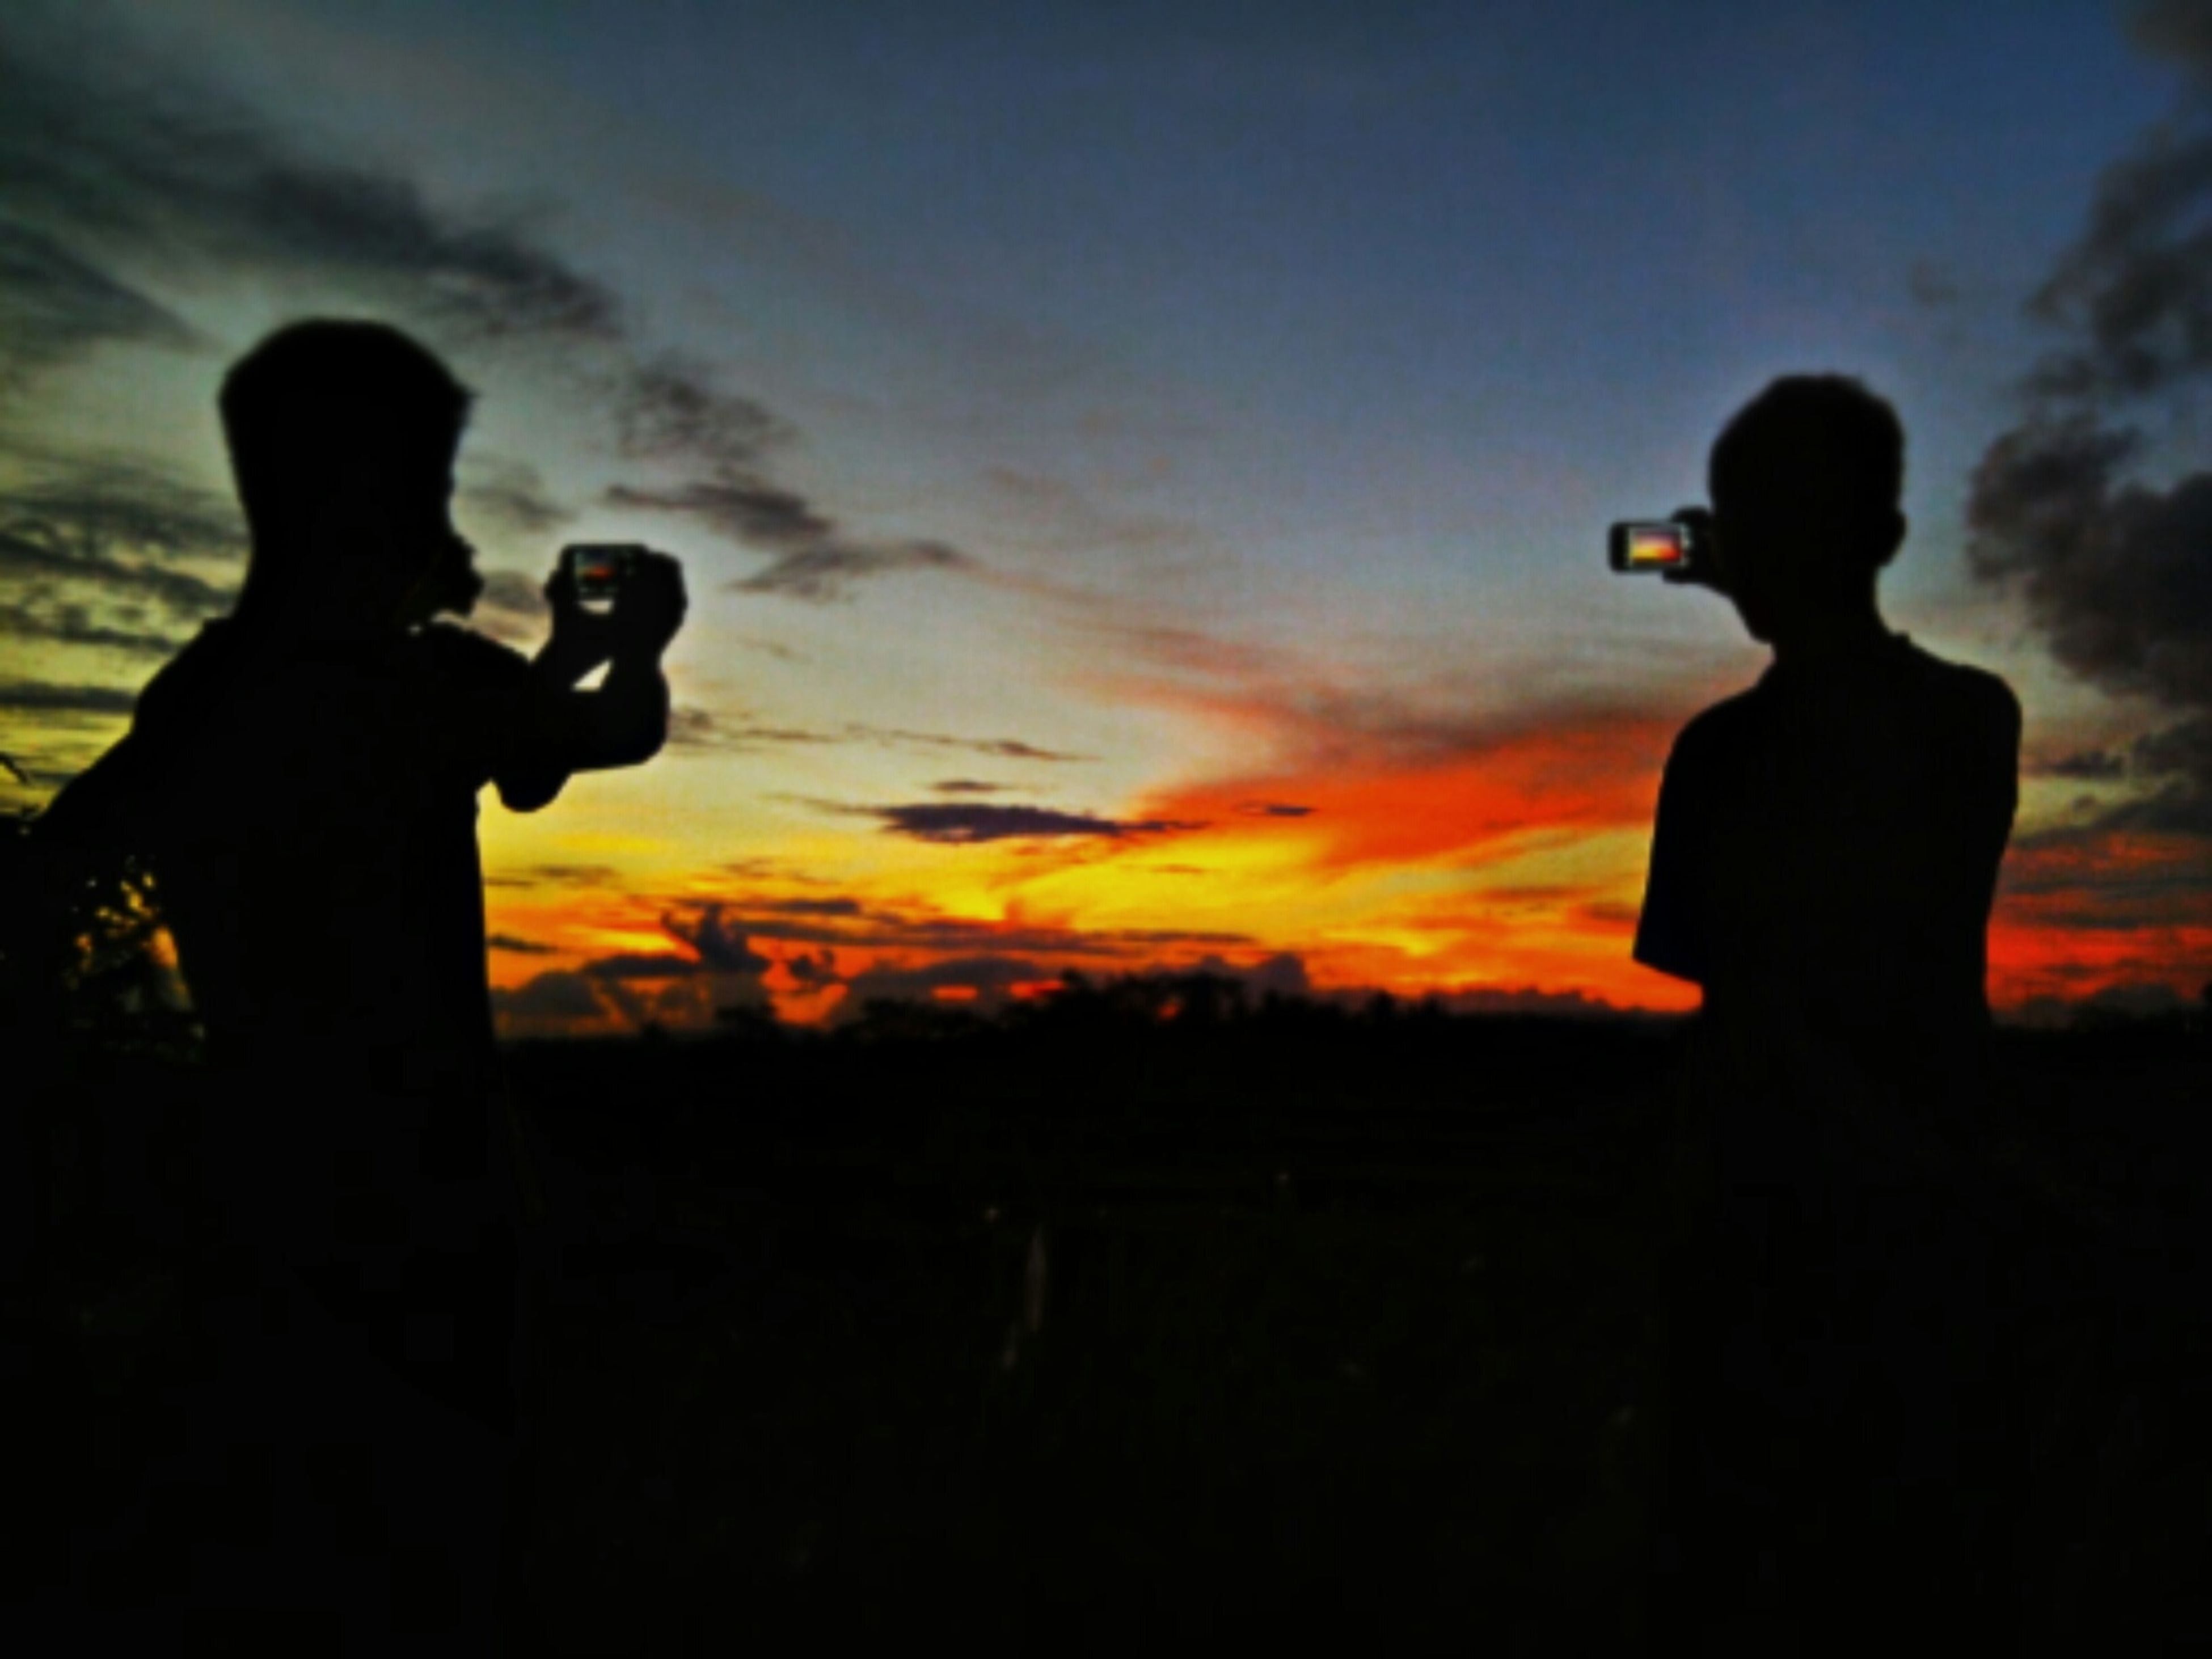 silhouette, sunset, lifestyles, sky, leisure activity, standing, men, three quarter length, cloud - sky, orange color, outline, photography themes, photographing, togetherness, dusk, field, love